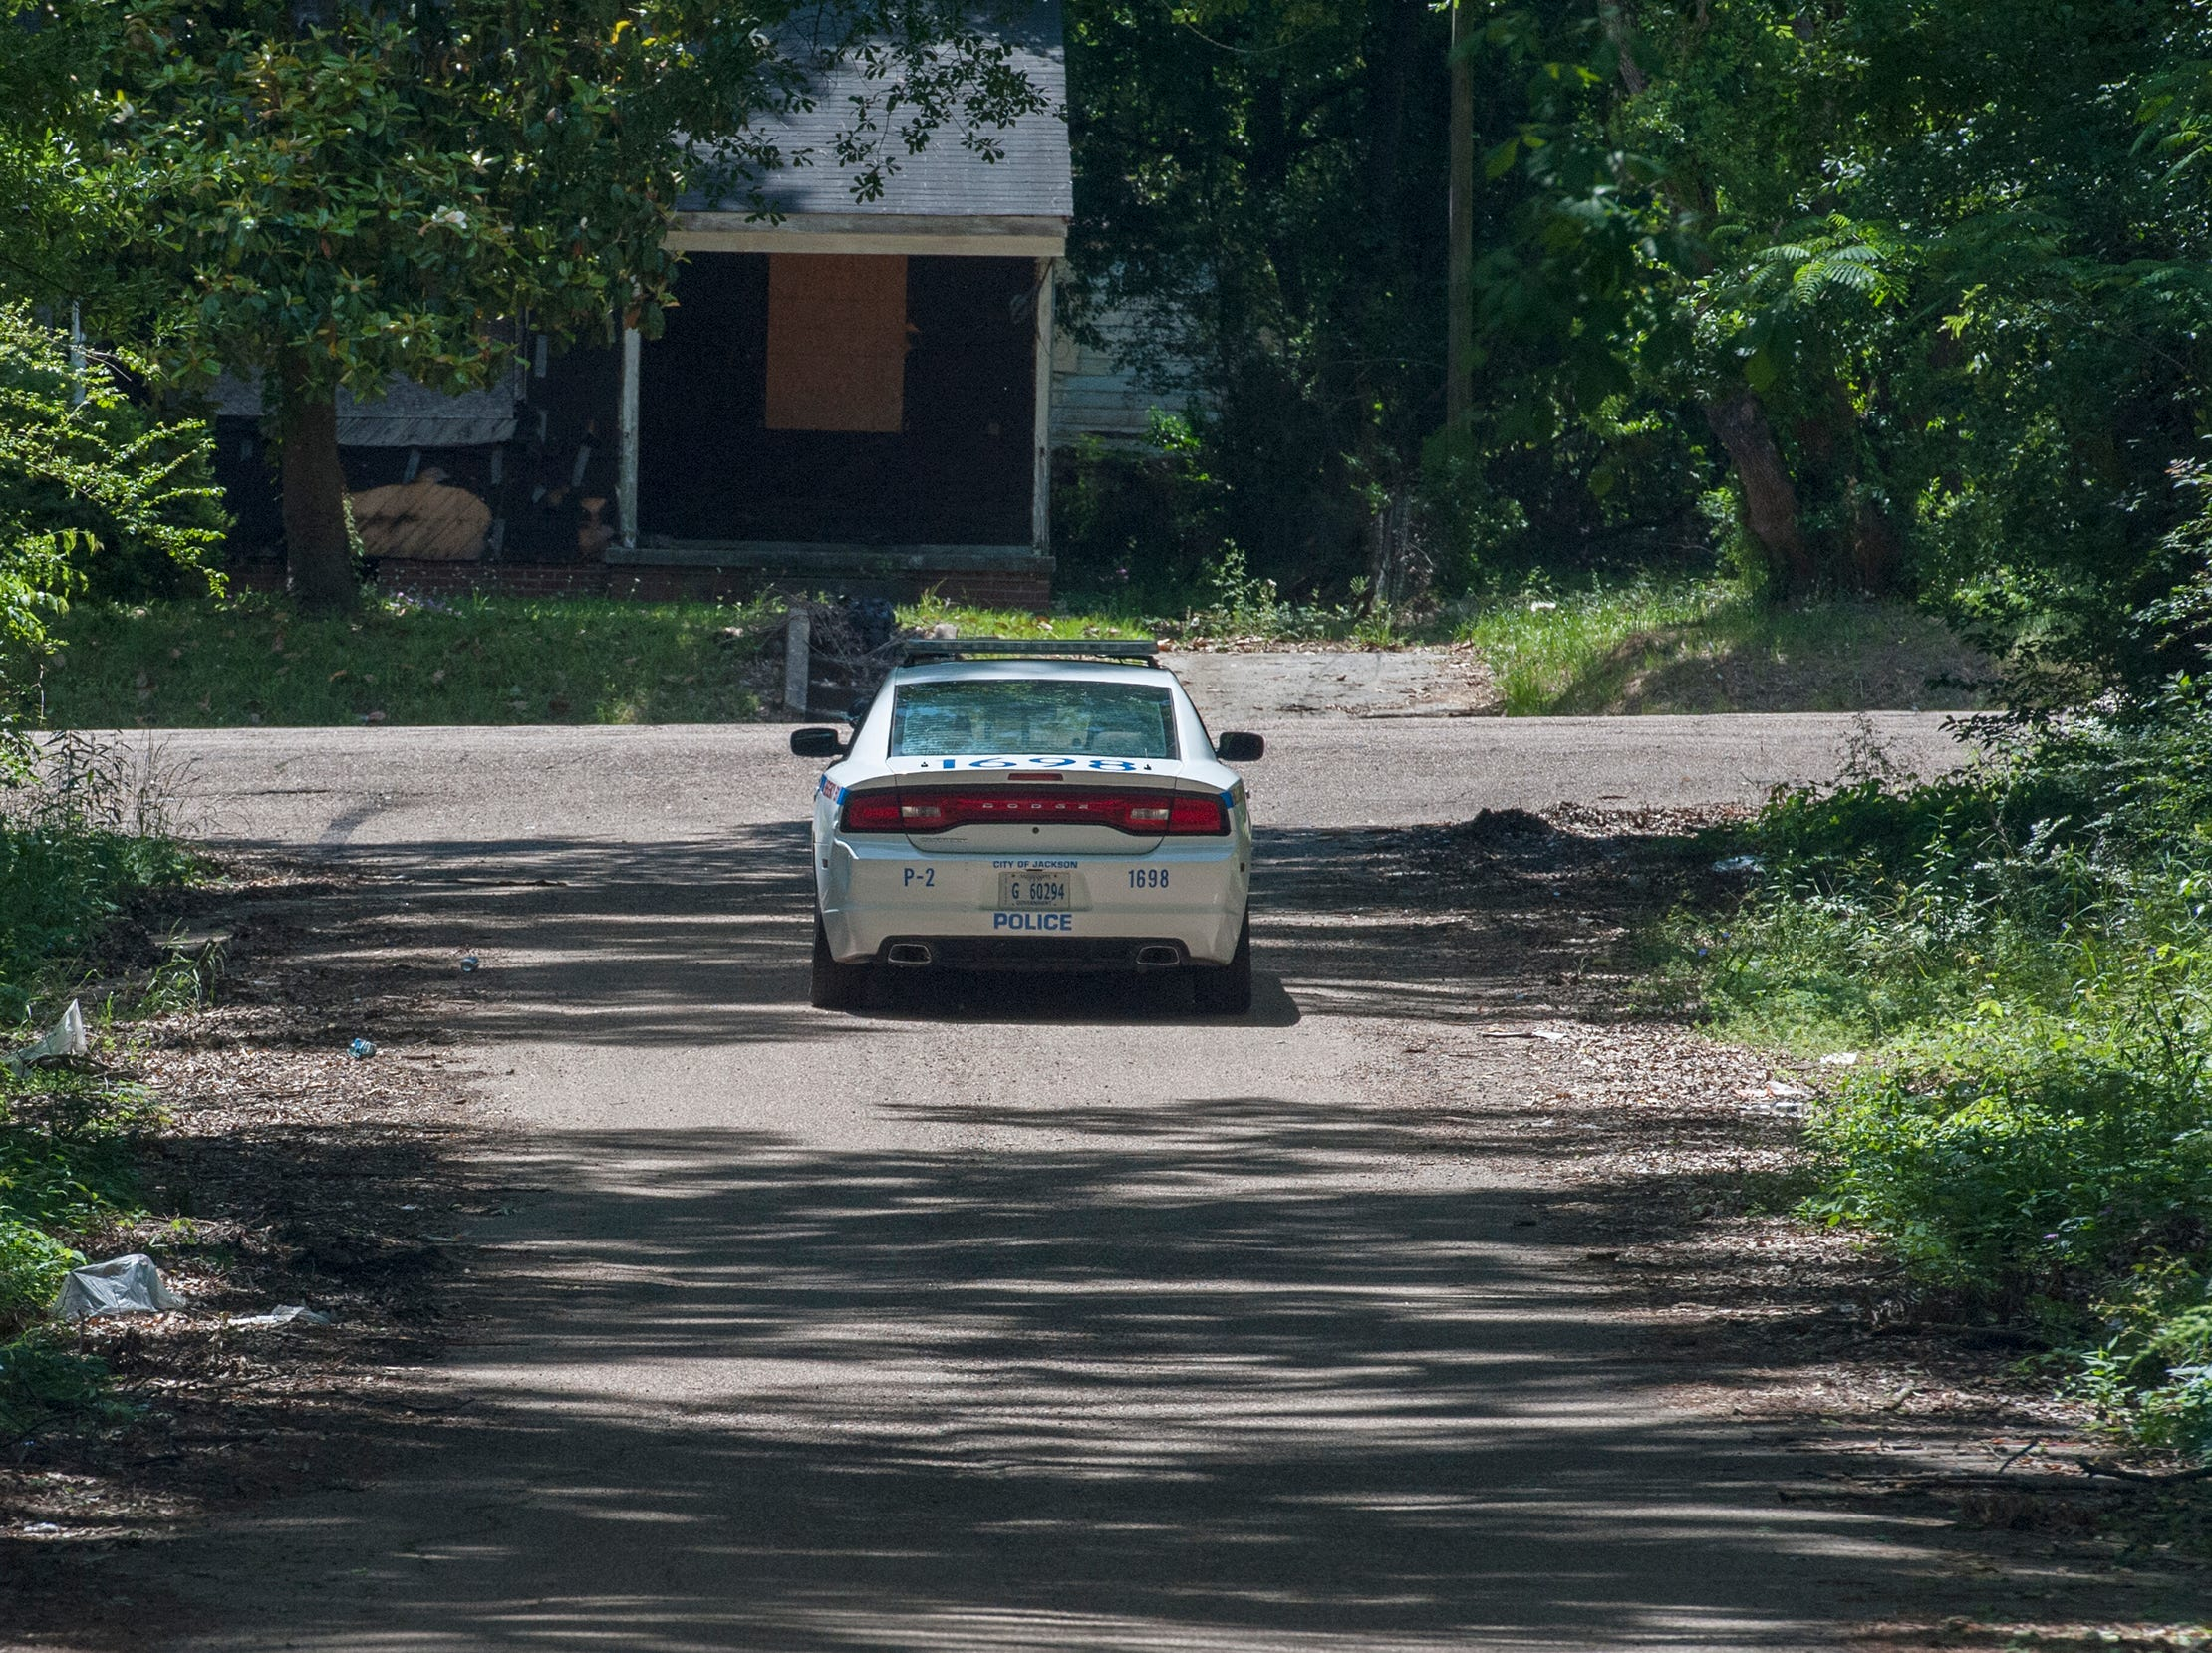 A Jackson Police cruiser drives along Willing Avenue where a woman was shot to death during a domestic dispute on Sunday, May 5, 2019. Maurice Clincy, 35, is charged with murder in the death of his 37-year-old girlfriend, Nicole Newsome, following a domestic dispute as the couple walked on Willing Avenue near the intersection of Ellis Avenue.